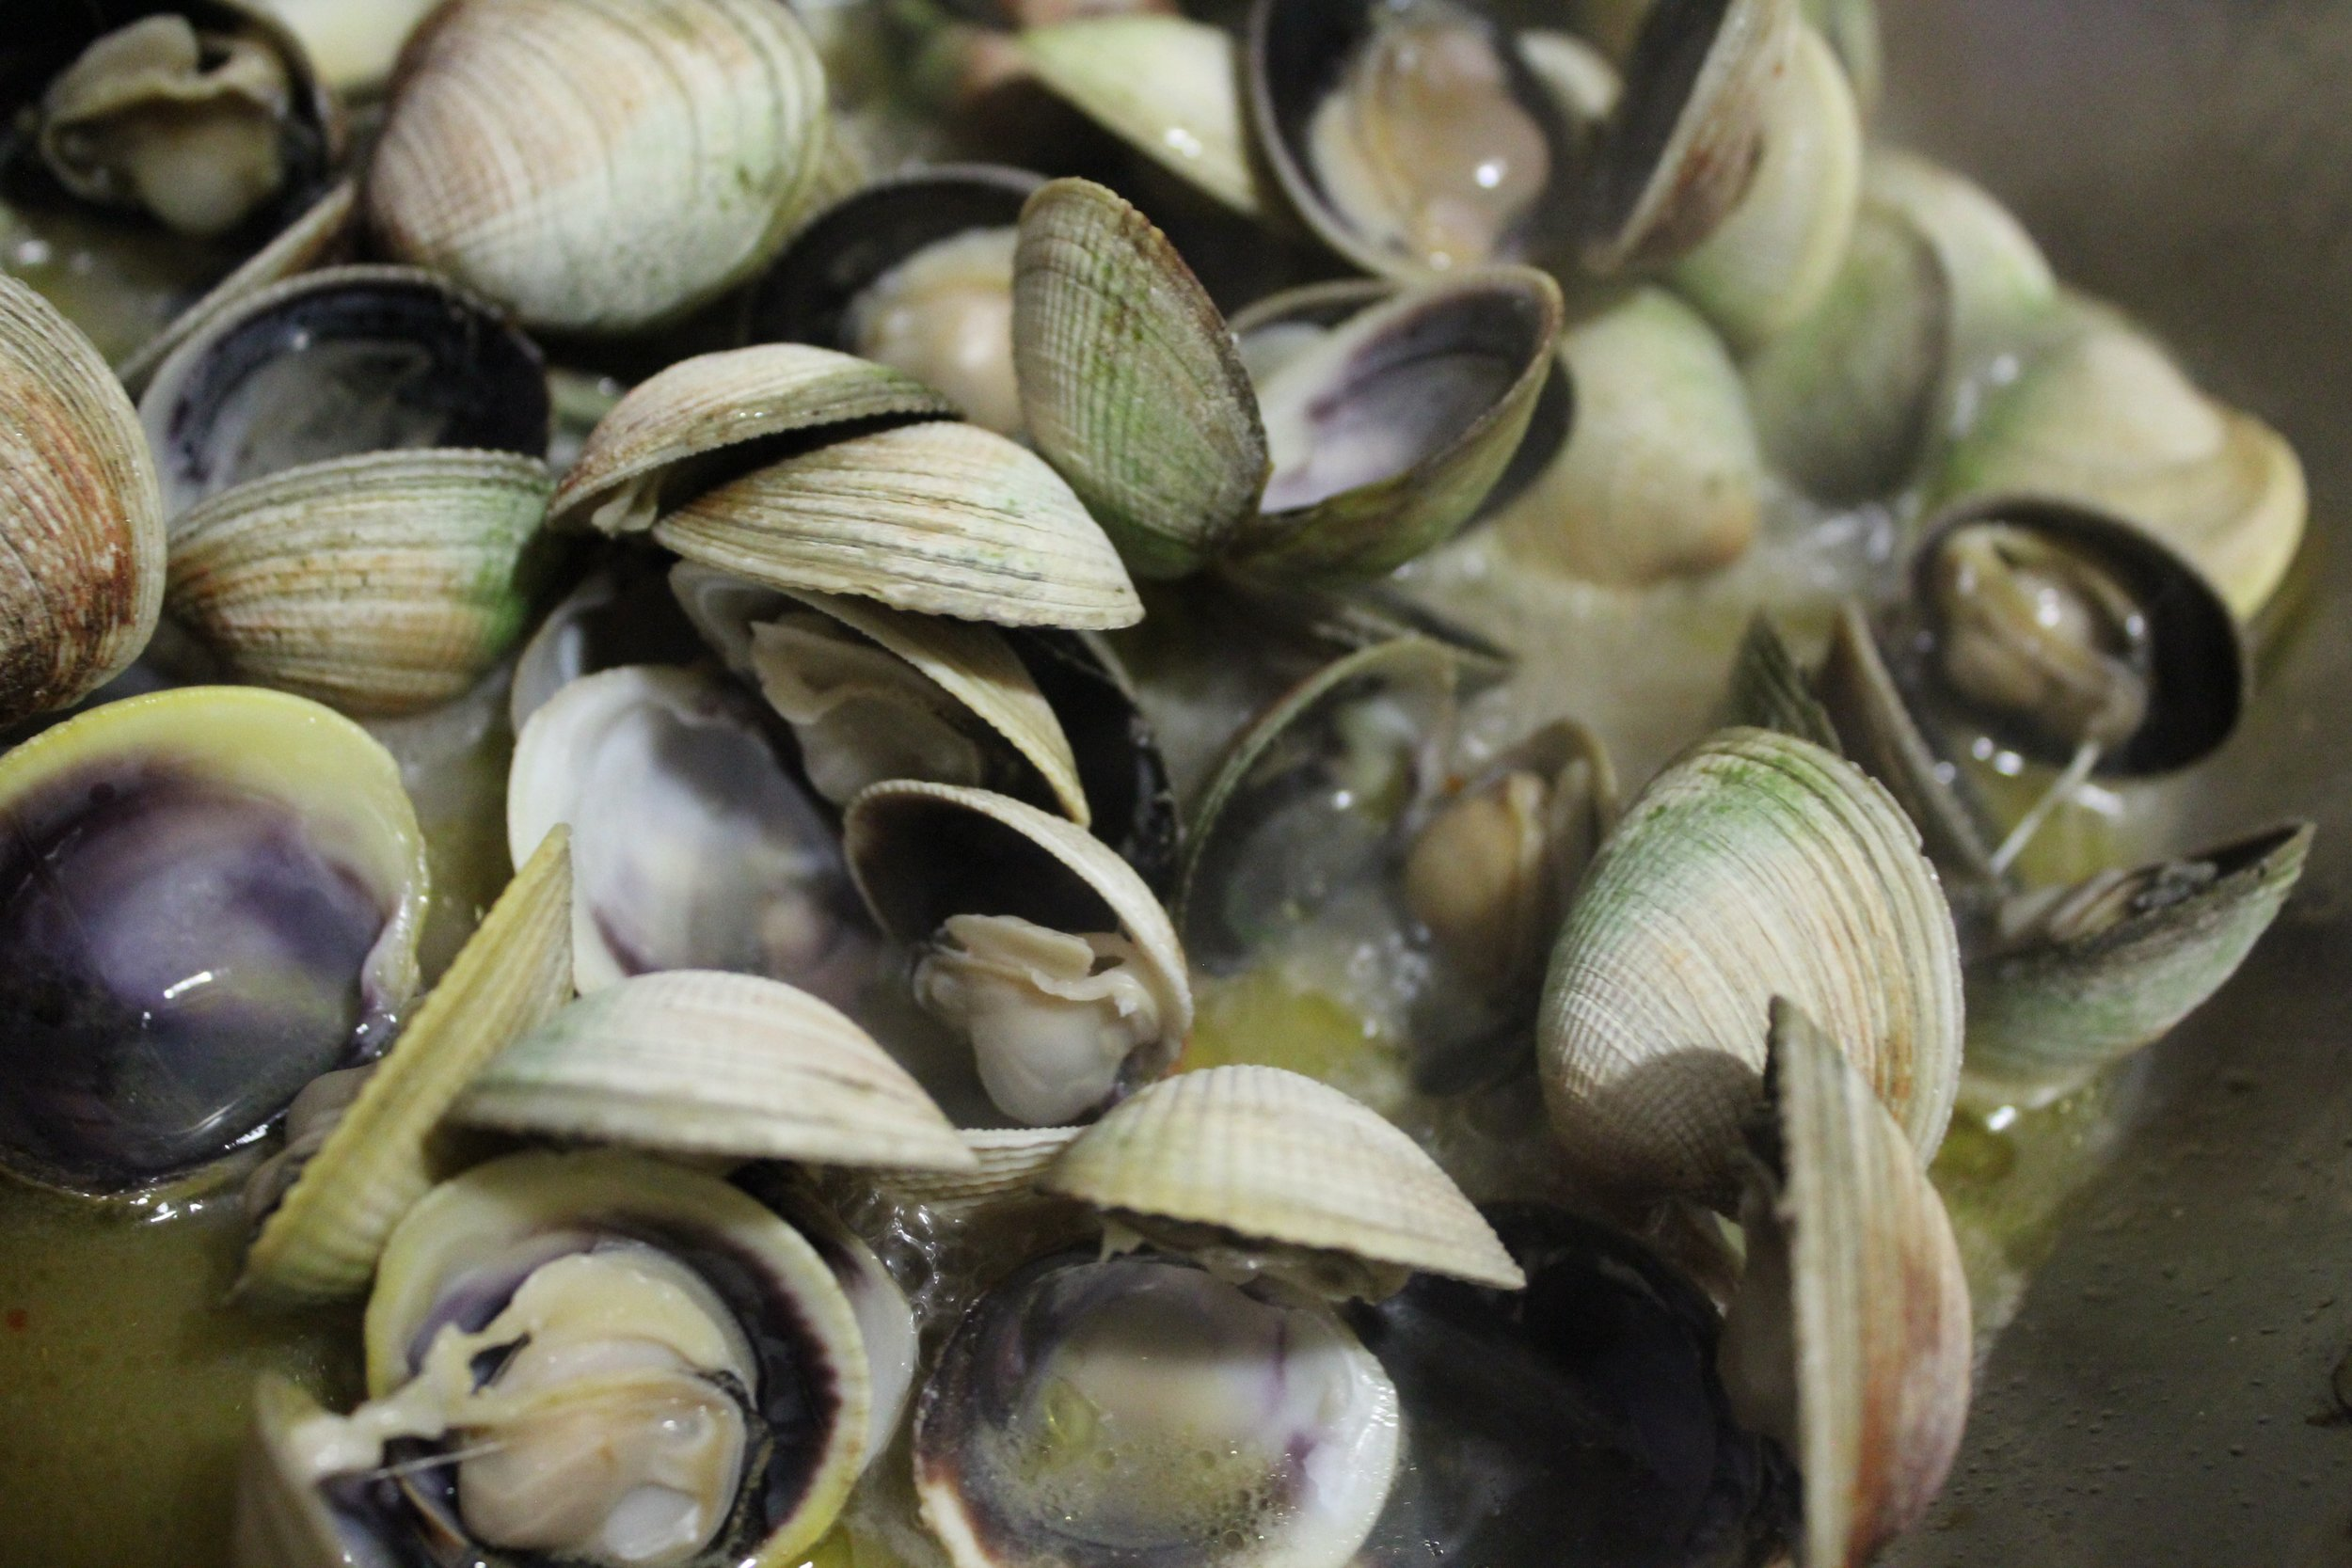 Vongole or small clams at Cosenza's Fish Market.  Click here for the recipe .